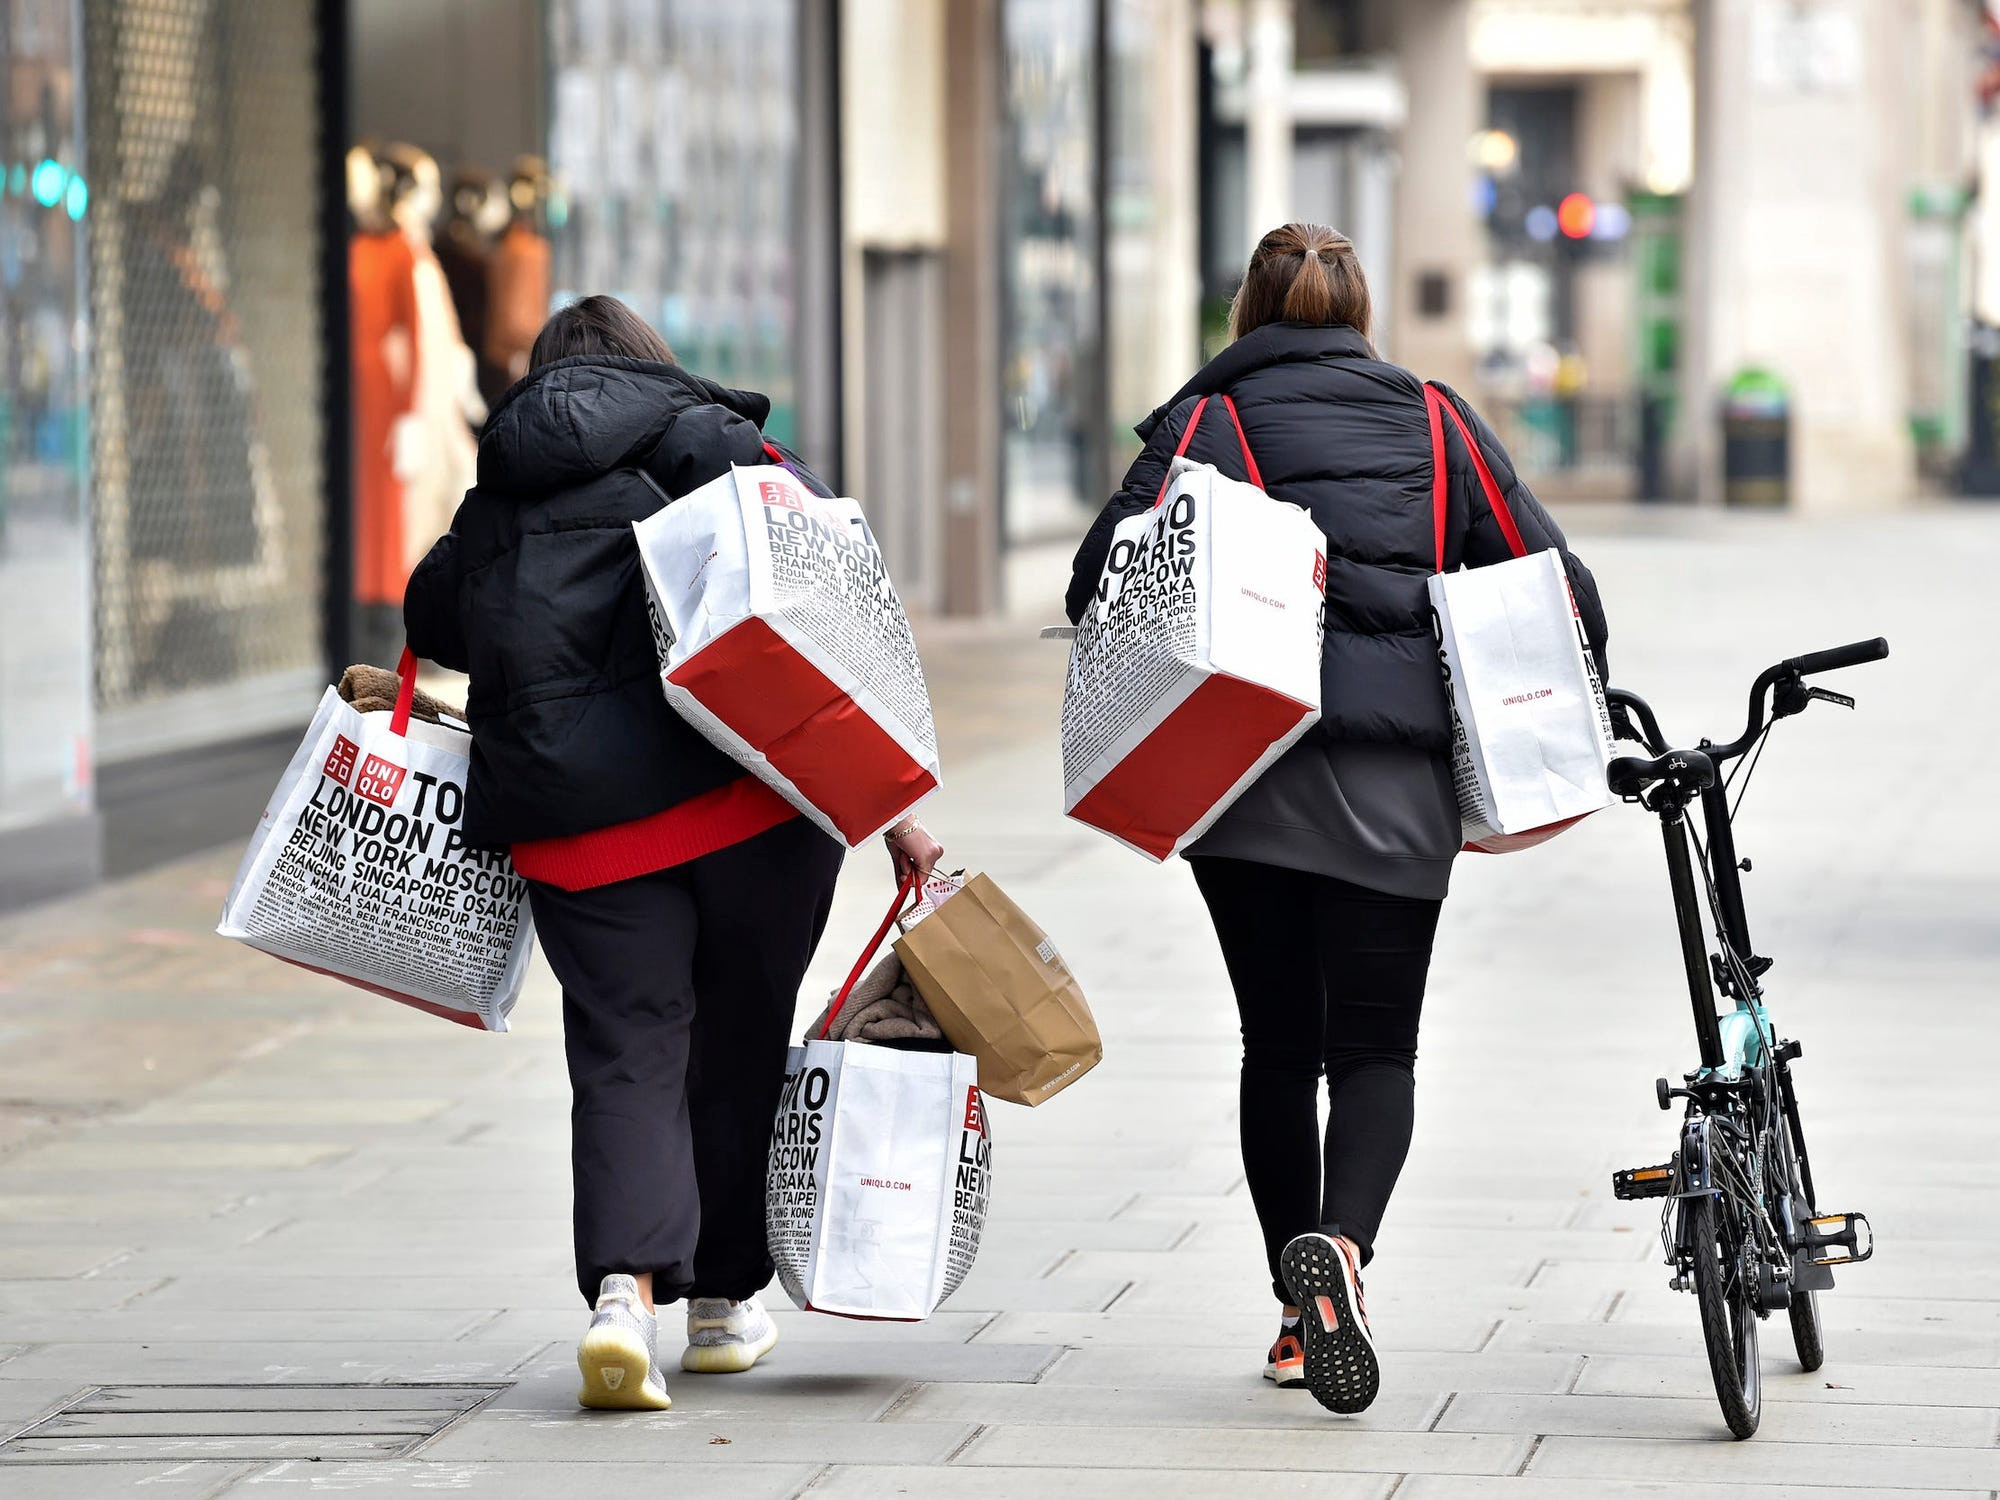 Individuals walking down the street with shopping bags.